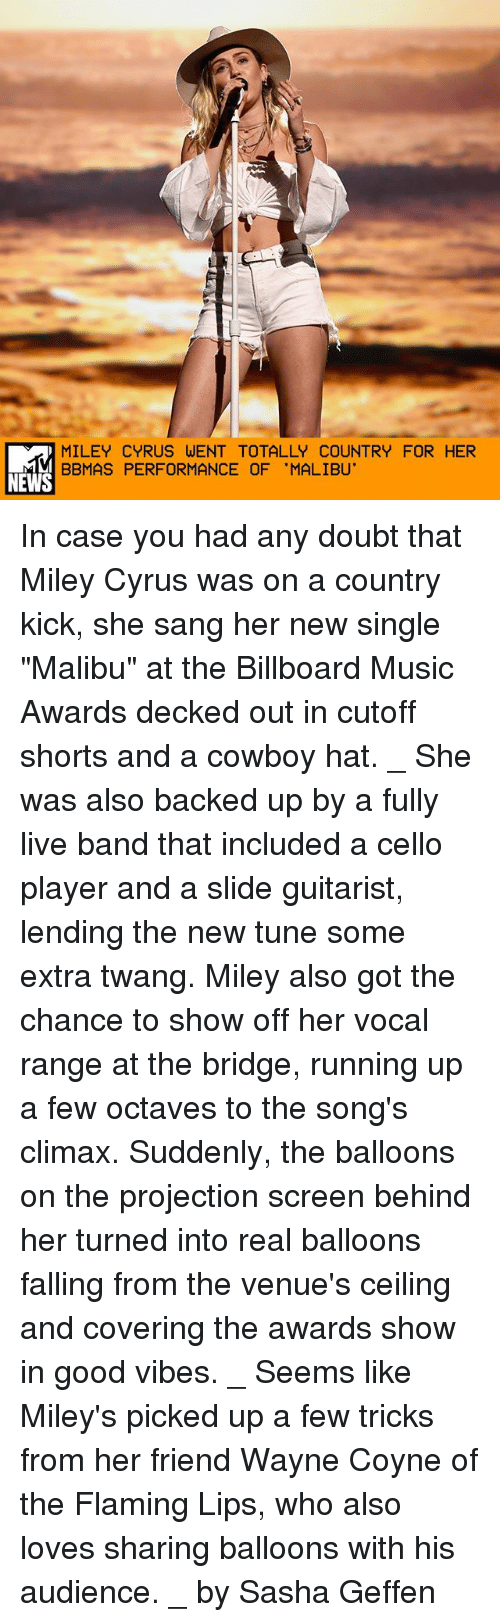 "Billboard, Memes, and Miley Cyrus: MILEY CYRUS WENT TOTALLY COUNTRY FOR HER  BBMAS PERFORMANCE OF 'MALIBU'  NEWS In case you had any doubt that Miley Cyrus was on a country kick, she sang her new single ""Malibu"" at the Billboard Music Awards decked out in cutoff shorts and a cowboy hat. _ She was also backed up by a fully live band that included a cello player and a slide guitarist, lending the new tune some extra twang. Miley also got the chance to show off her vocal range at the bridge, running up a few octaves to the song's climax. Suddenly, the balloons on the projection screen behind her turned into real balloons falling from the venue's ceiling and covering the awards show in good vibes. _ Seems like Miley's picked up a few tricks from her friend Wayne Coyne of the Flaming Lips, who also loves sharing balloons with his audience. _ by Sasha Geffen"